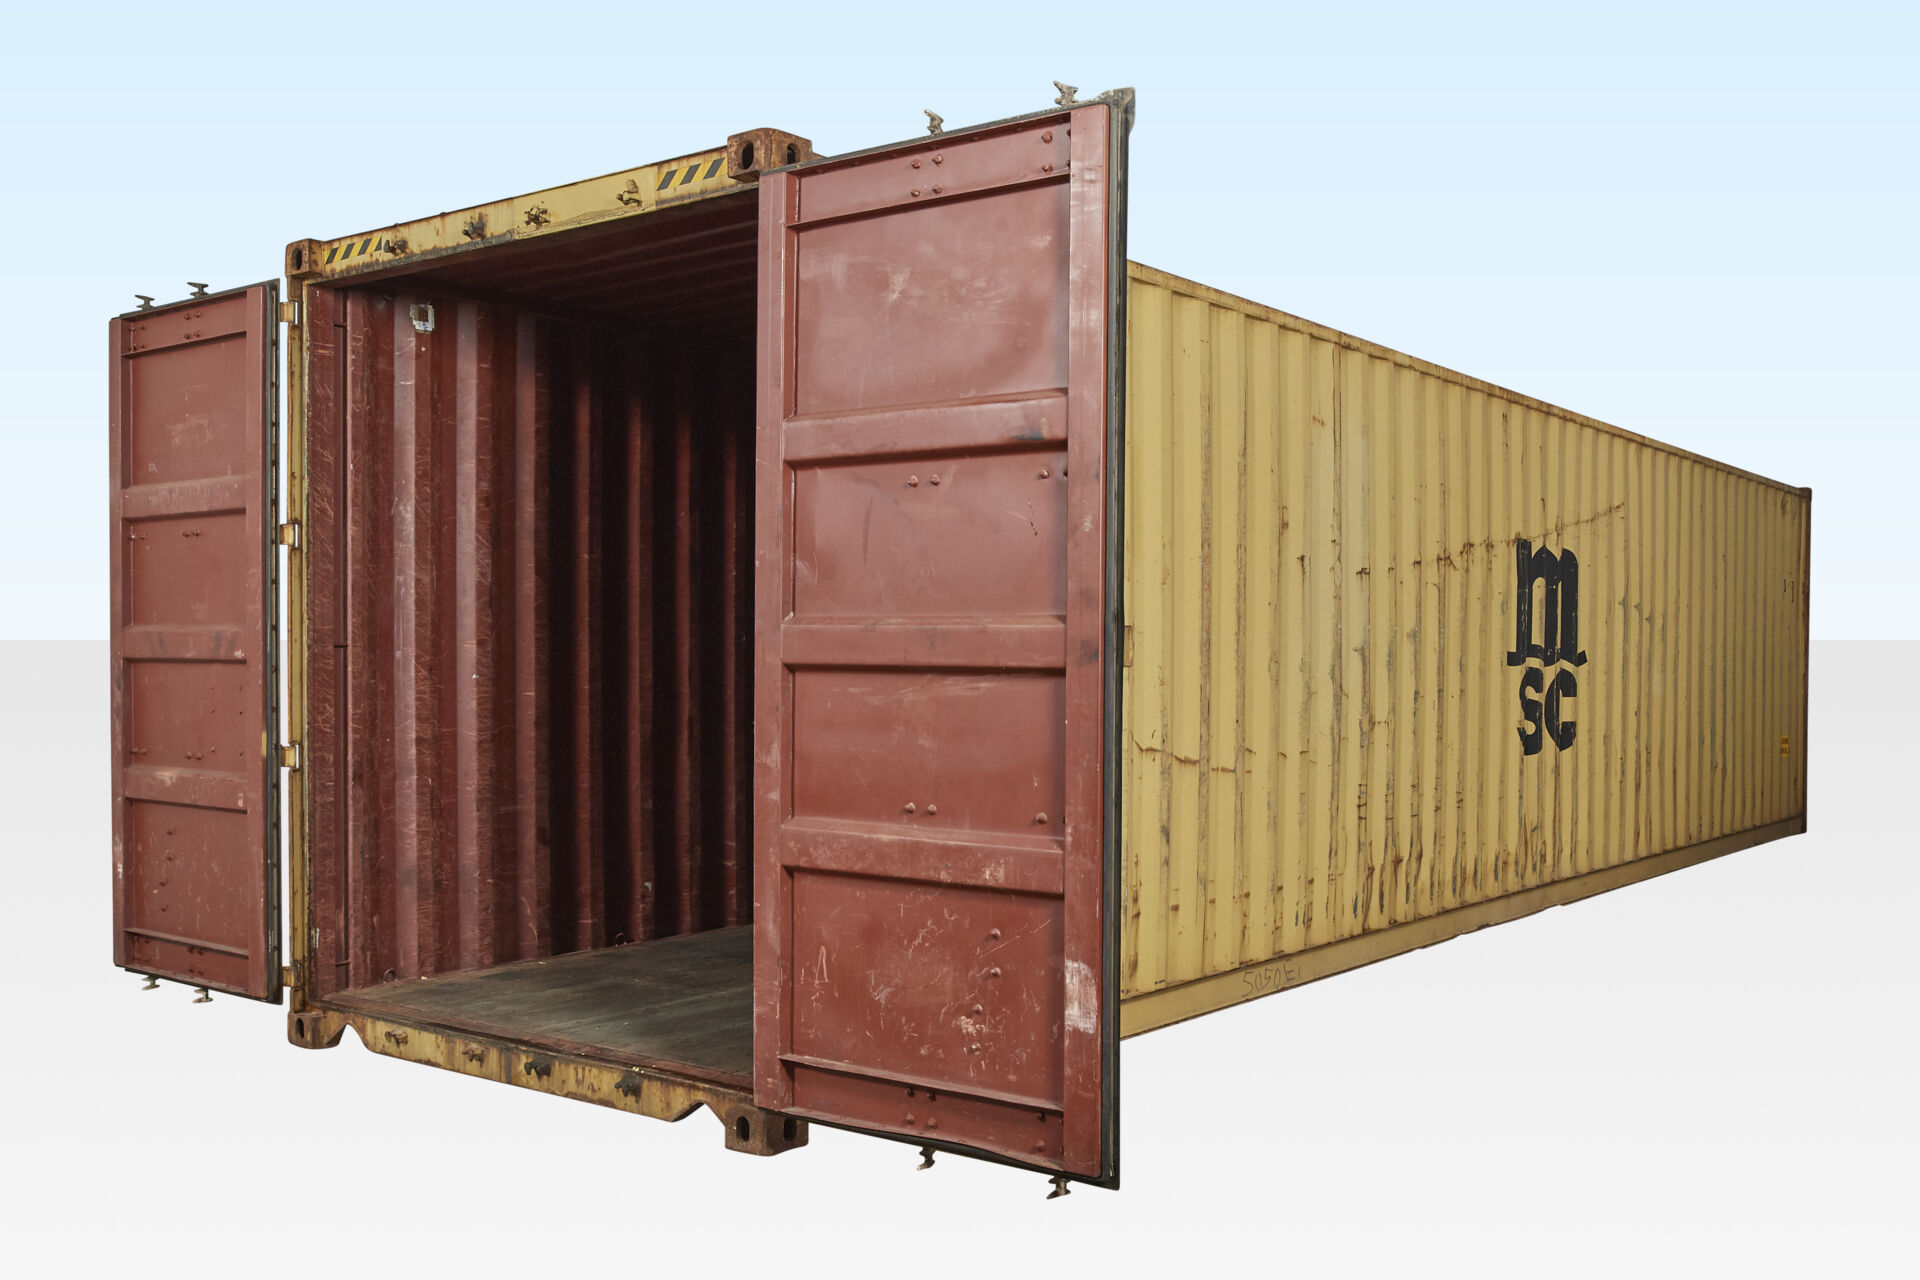 40ft x 8ft Used Shipping Container - High-Cube